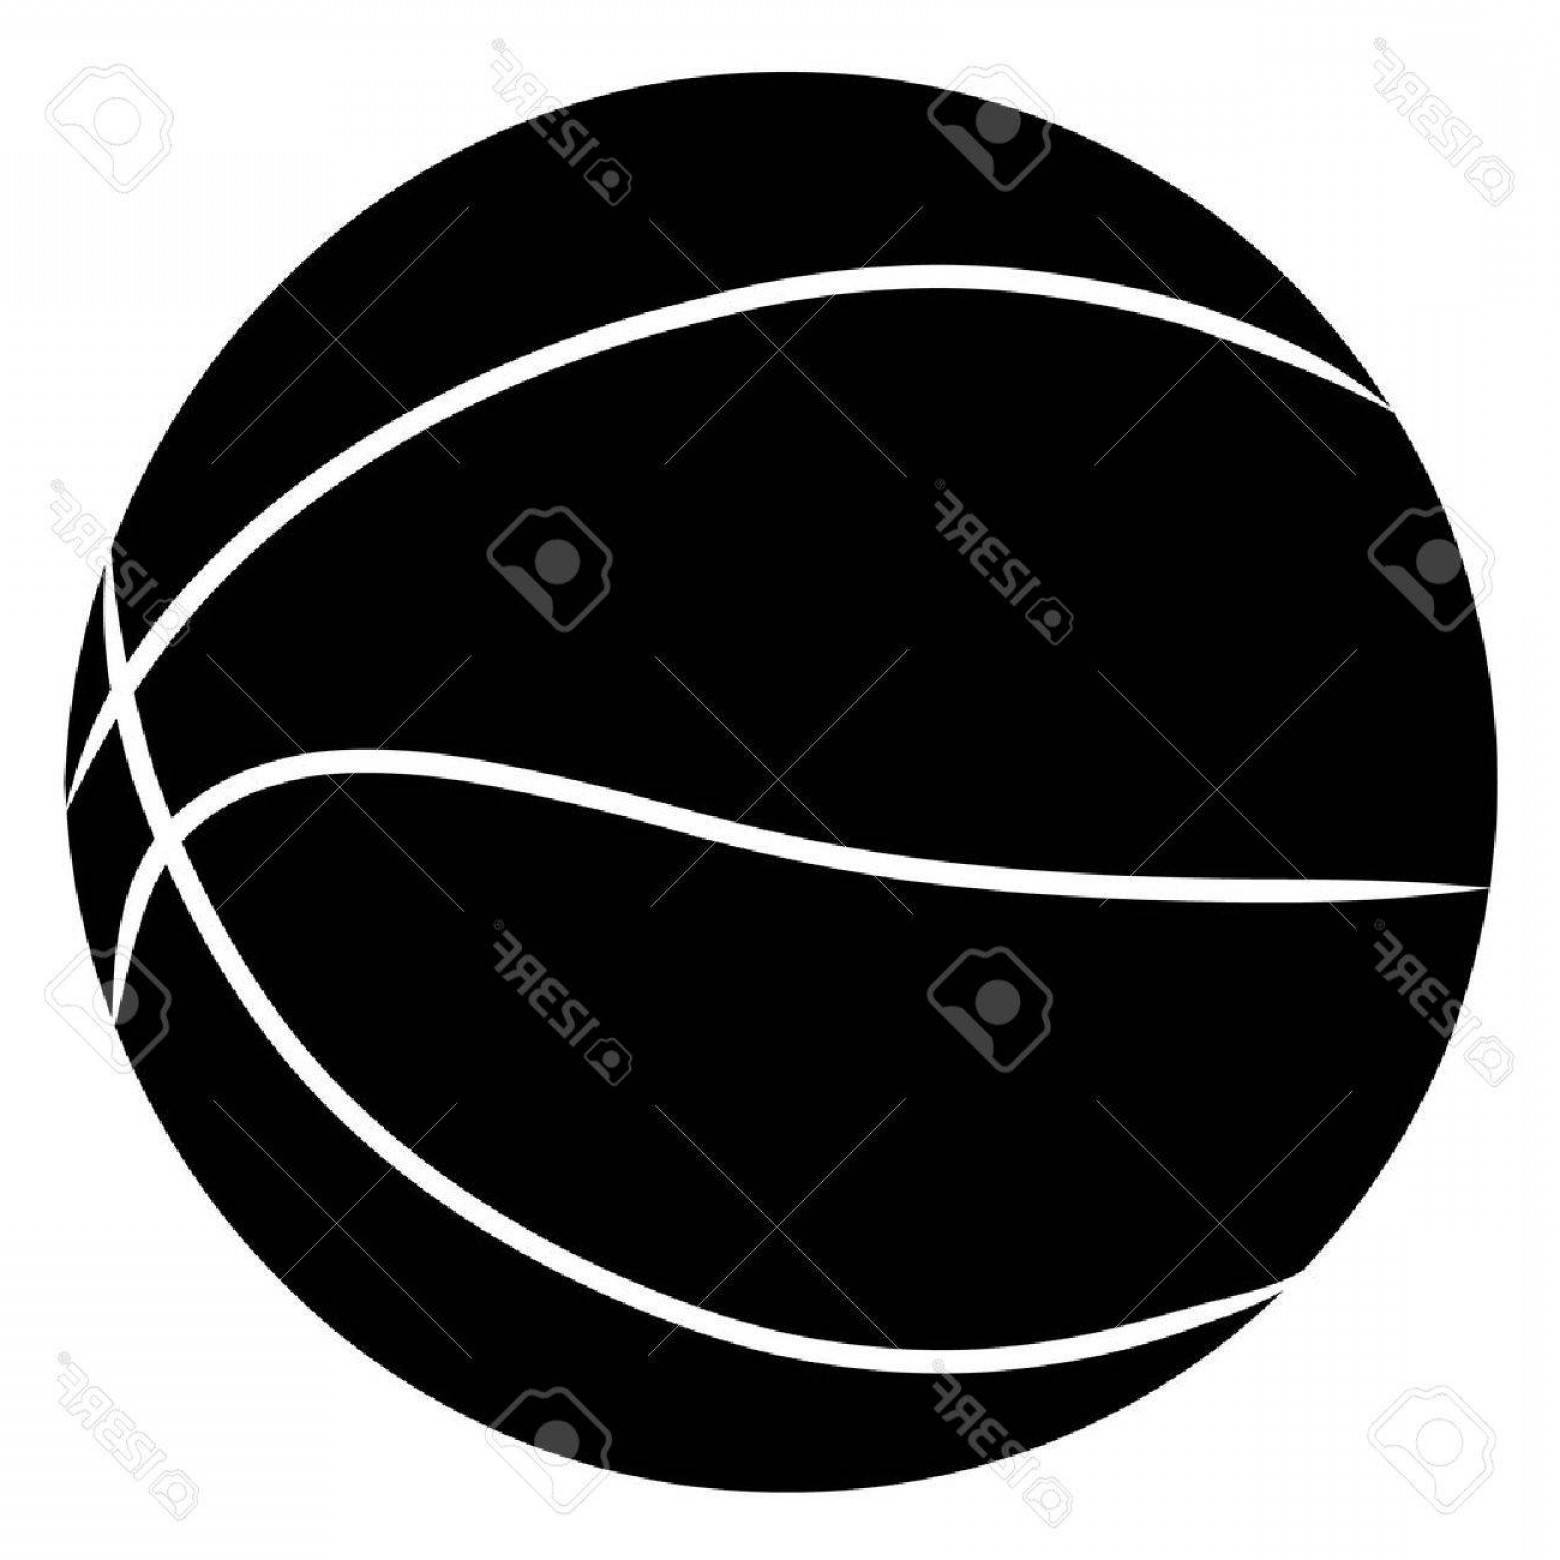 Basketball Seams Vector Clip Art: Photobasketball Silhouette In Black On White Background Vector